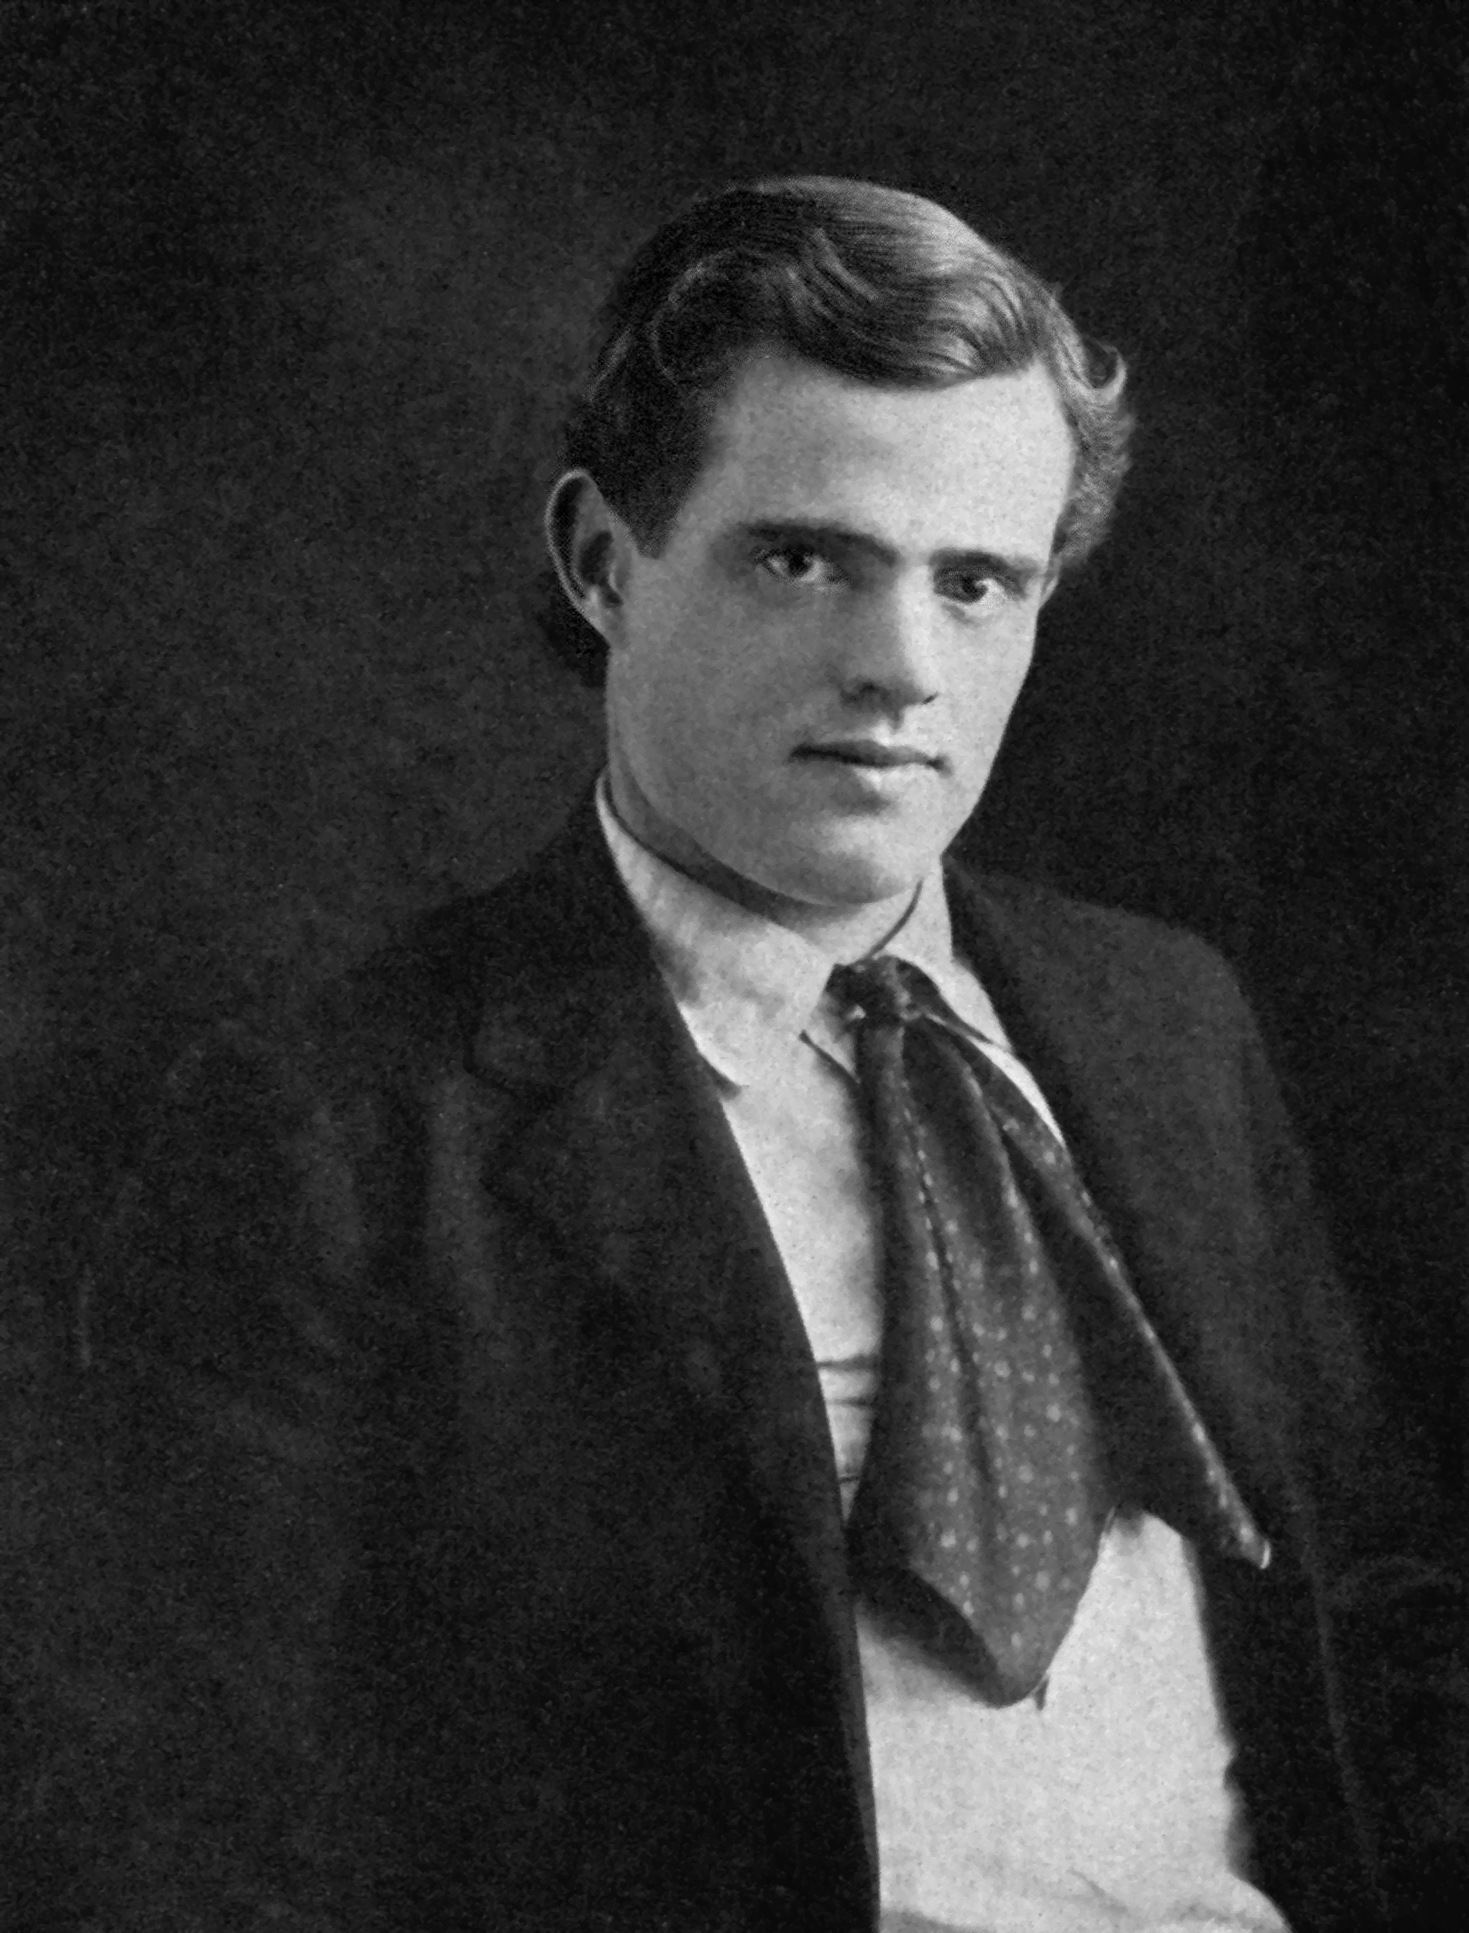 Young Jack London